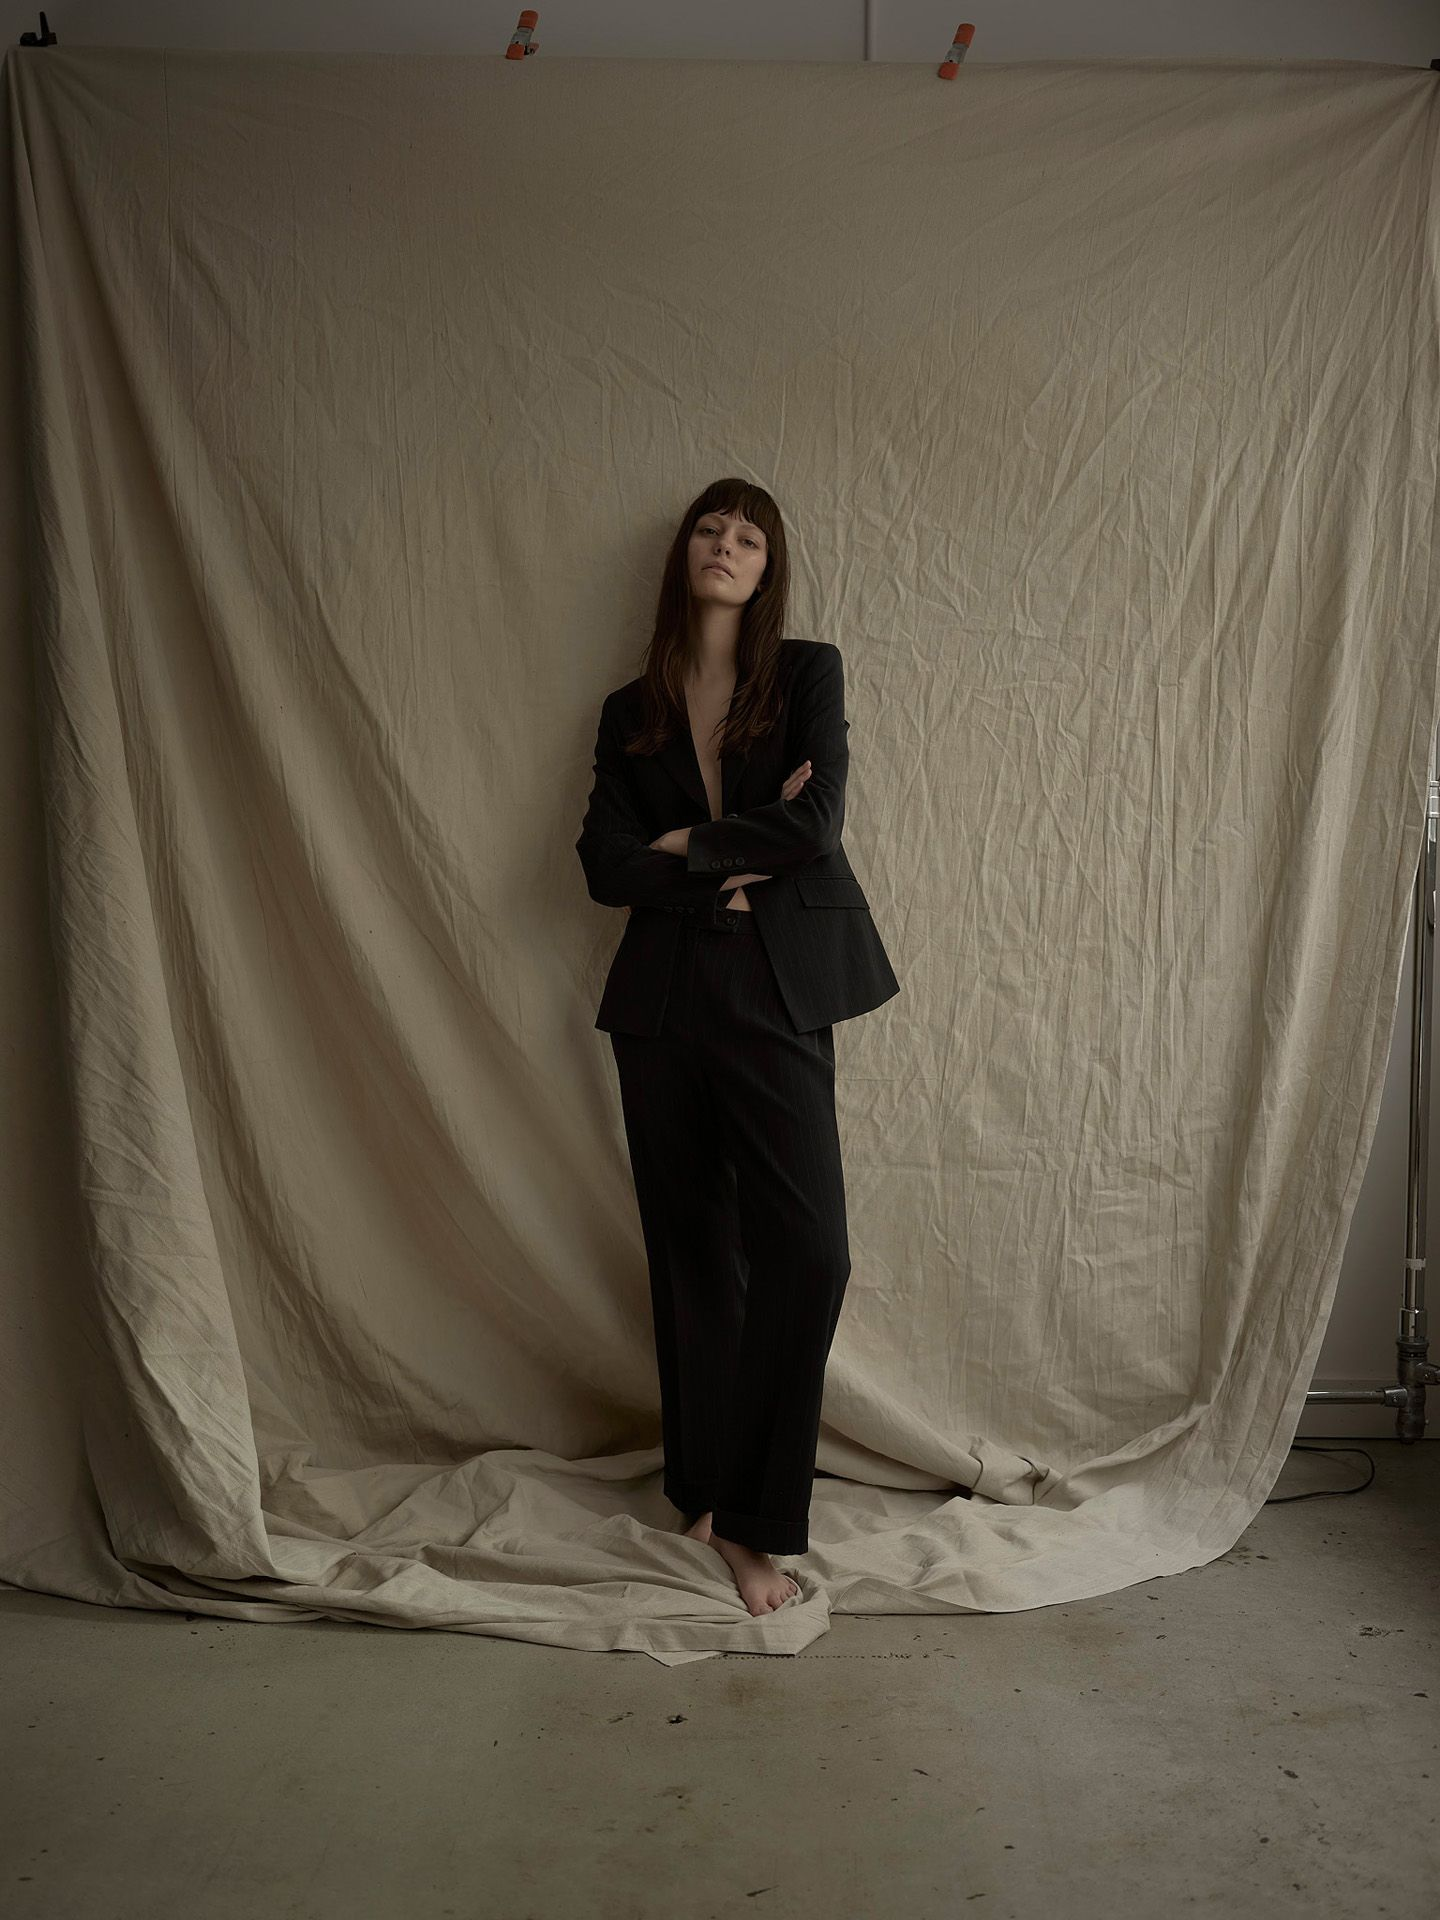 woman model wearing black suit pants and jacket on beige fabric background by Maxyme G Delisle for Mariane